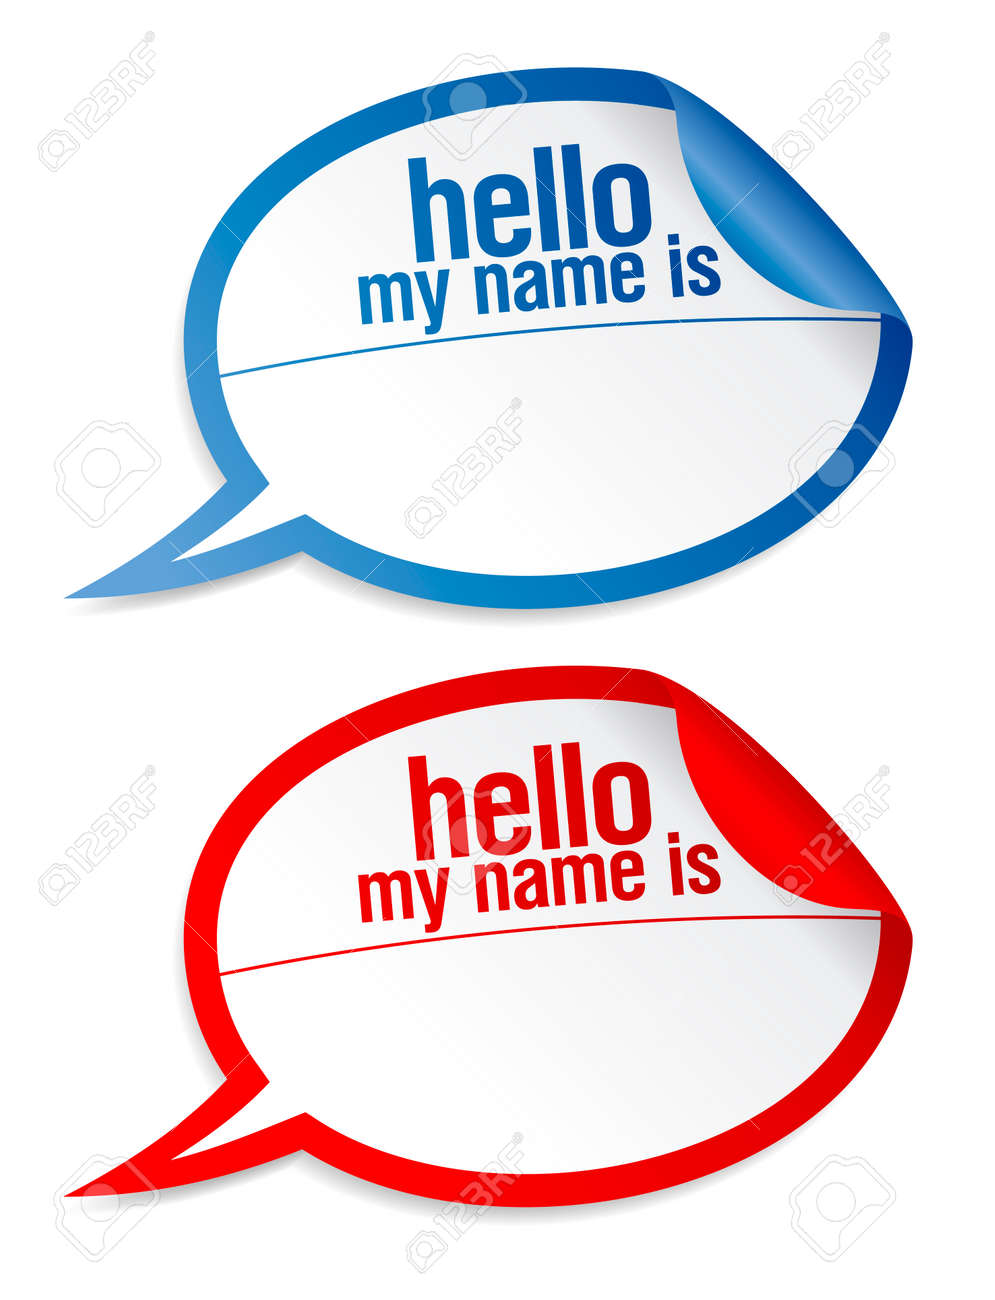 Color name tag blank stickers hello my name is, in form of speech bubbles. Stock Vector - 7879657